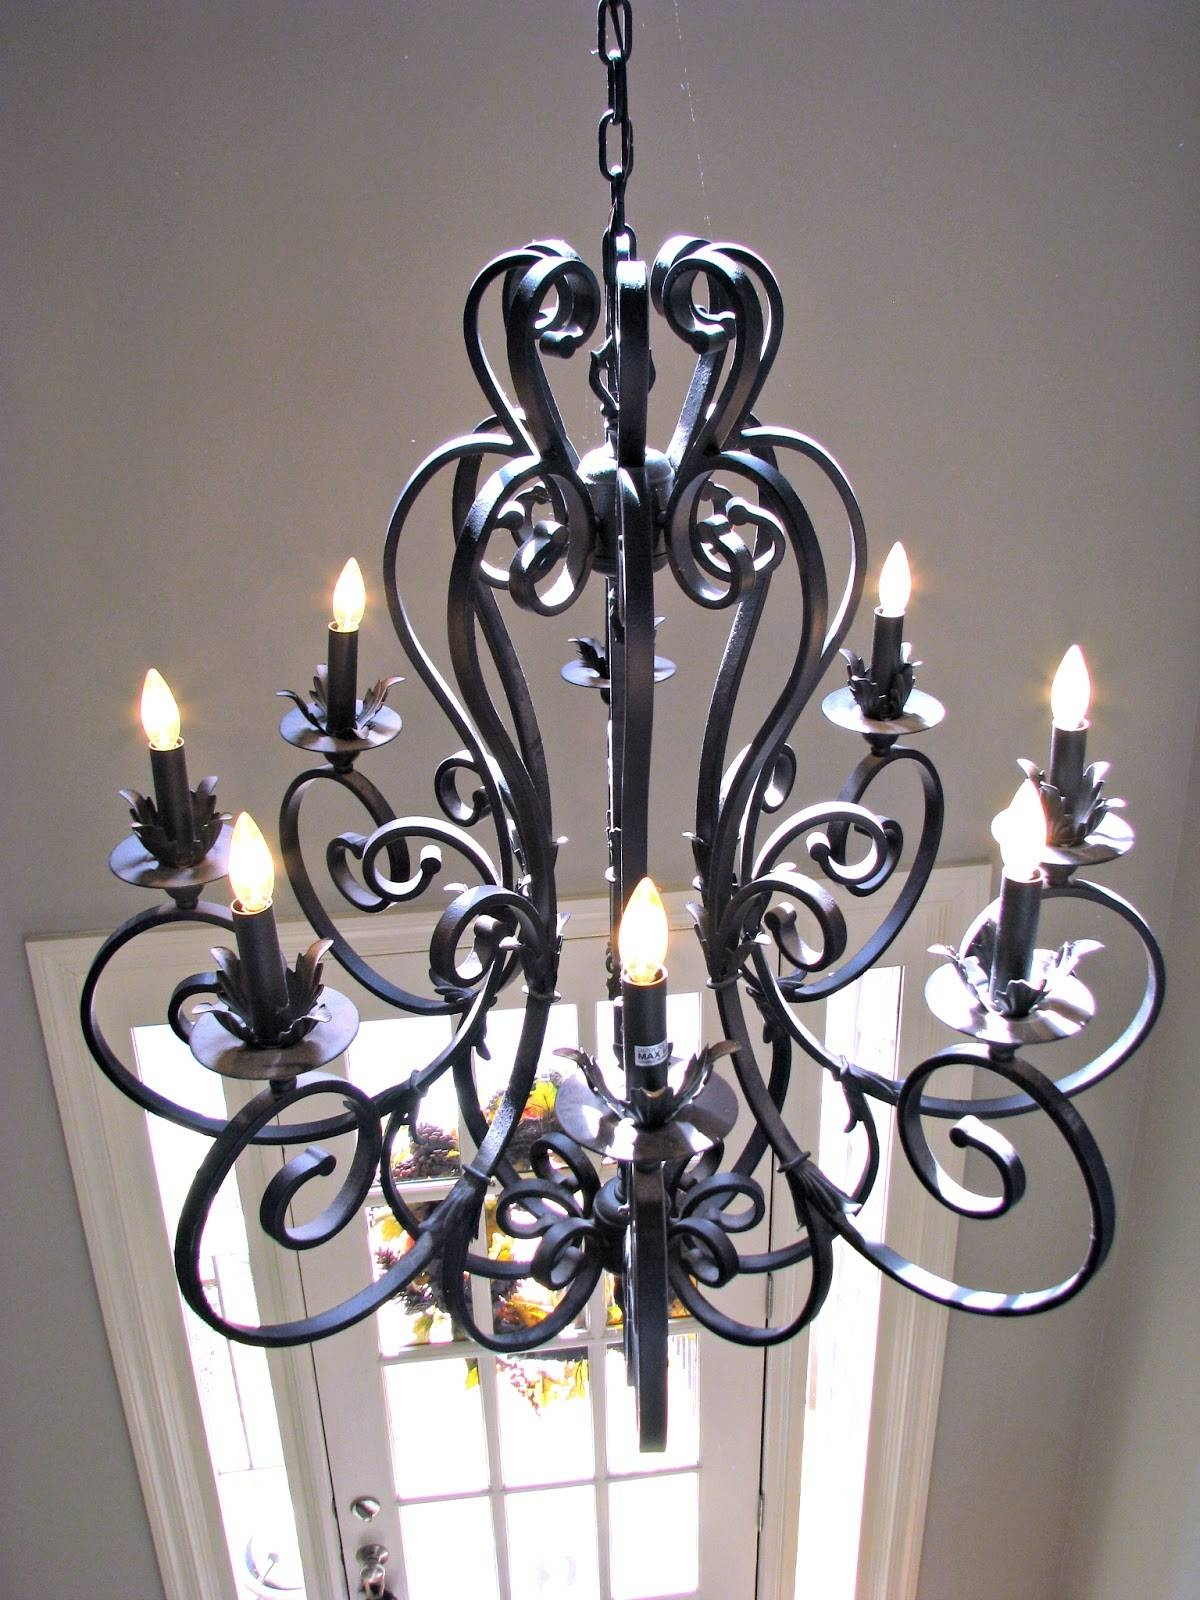 Homemadeville: Your Place For Homemade Inspiration: Home Decor intended for Wrought Iron Lights Pendants (Image 6 of 15)